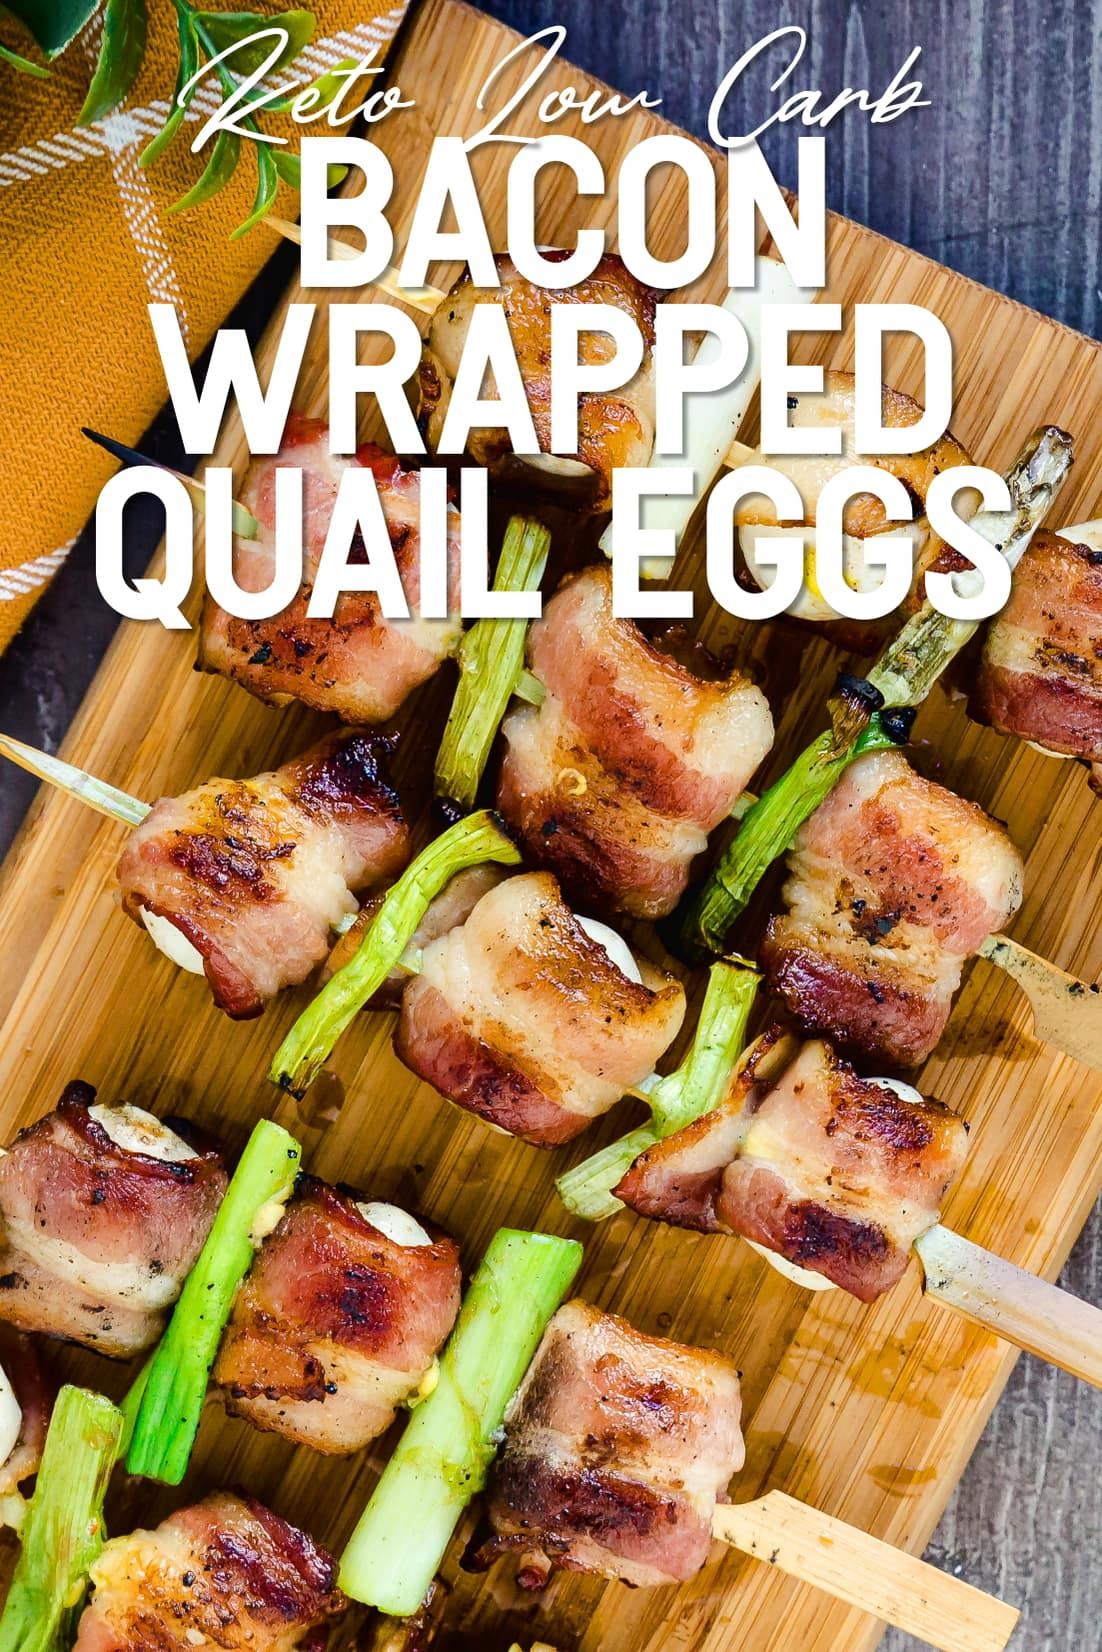 Bacon Wrapped Quail Eggs yakitori grilled and served on a wooden plank